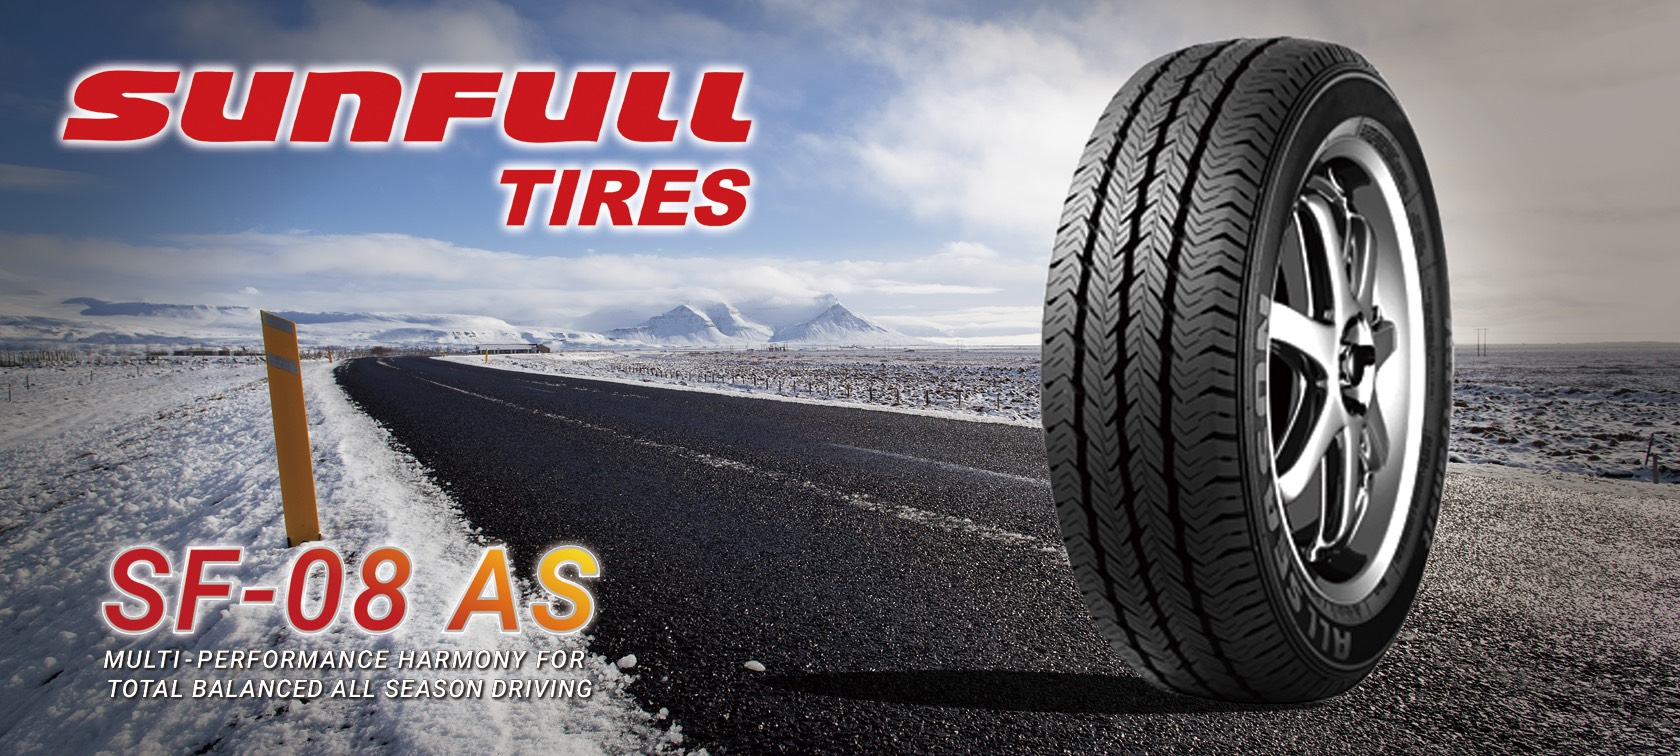 SUNFULL TIRES|Official Homepage